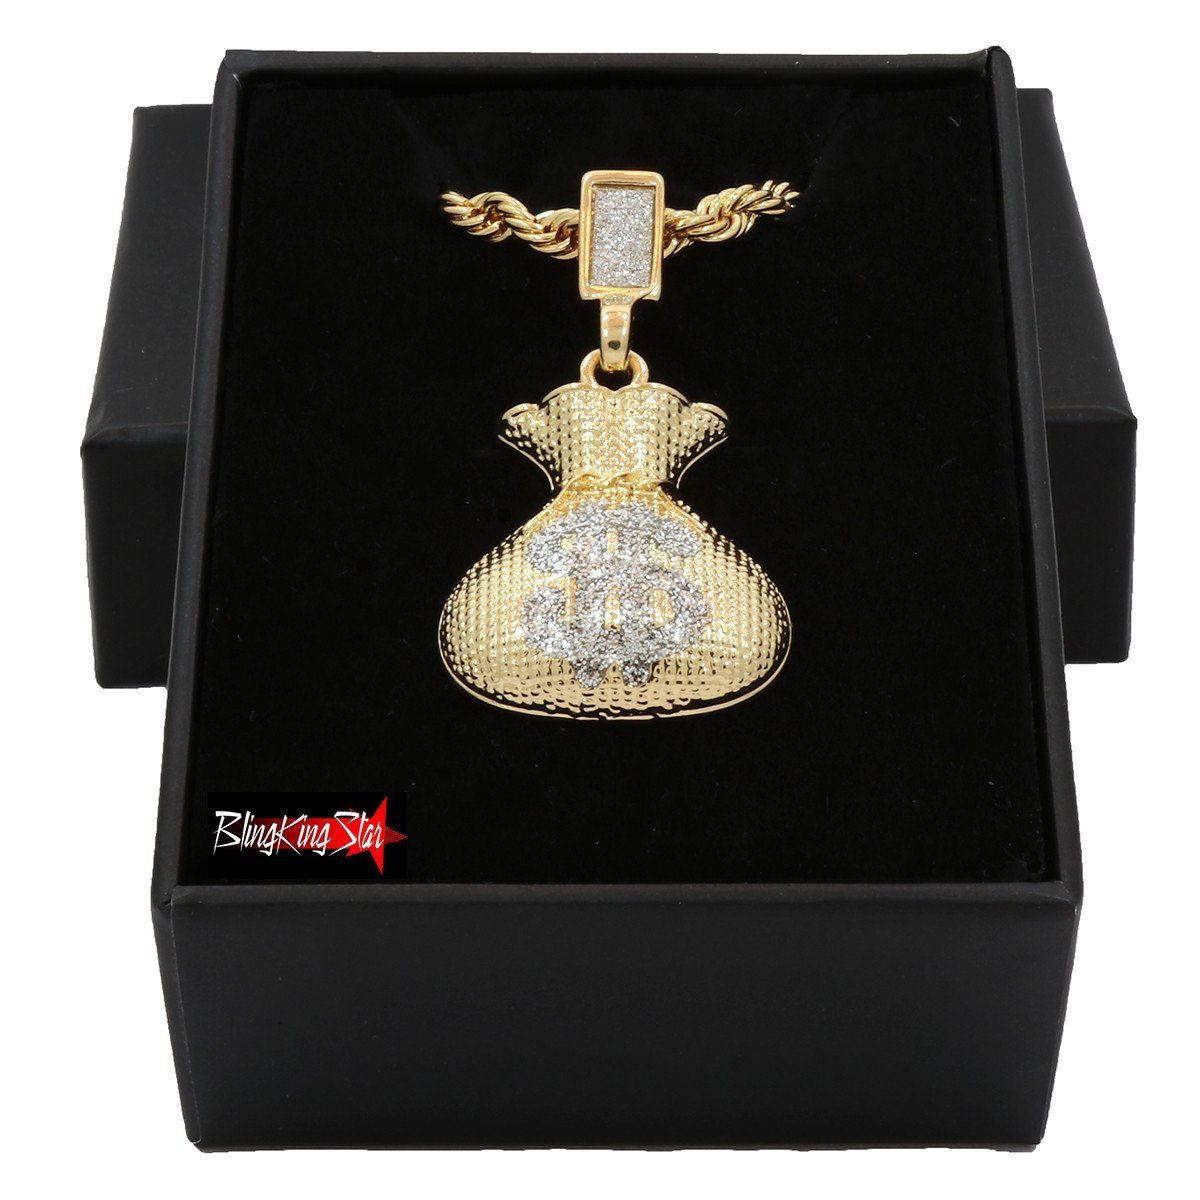 MONEY BAG PENDANT WITH GOLD ROPE CHAIN